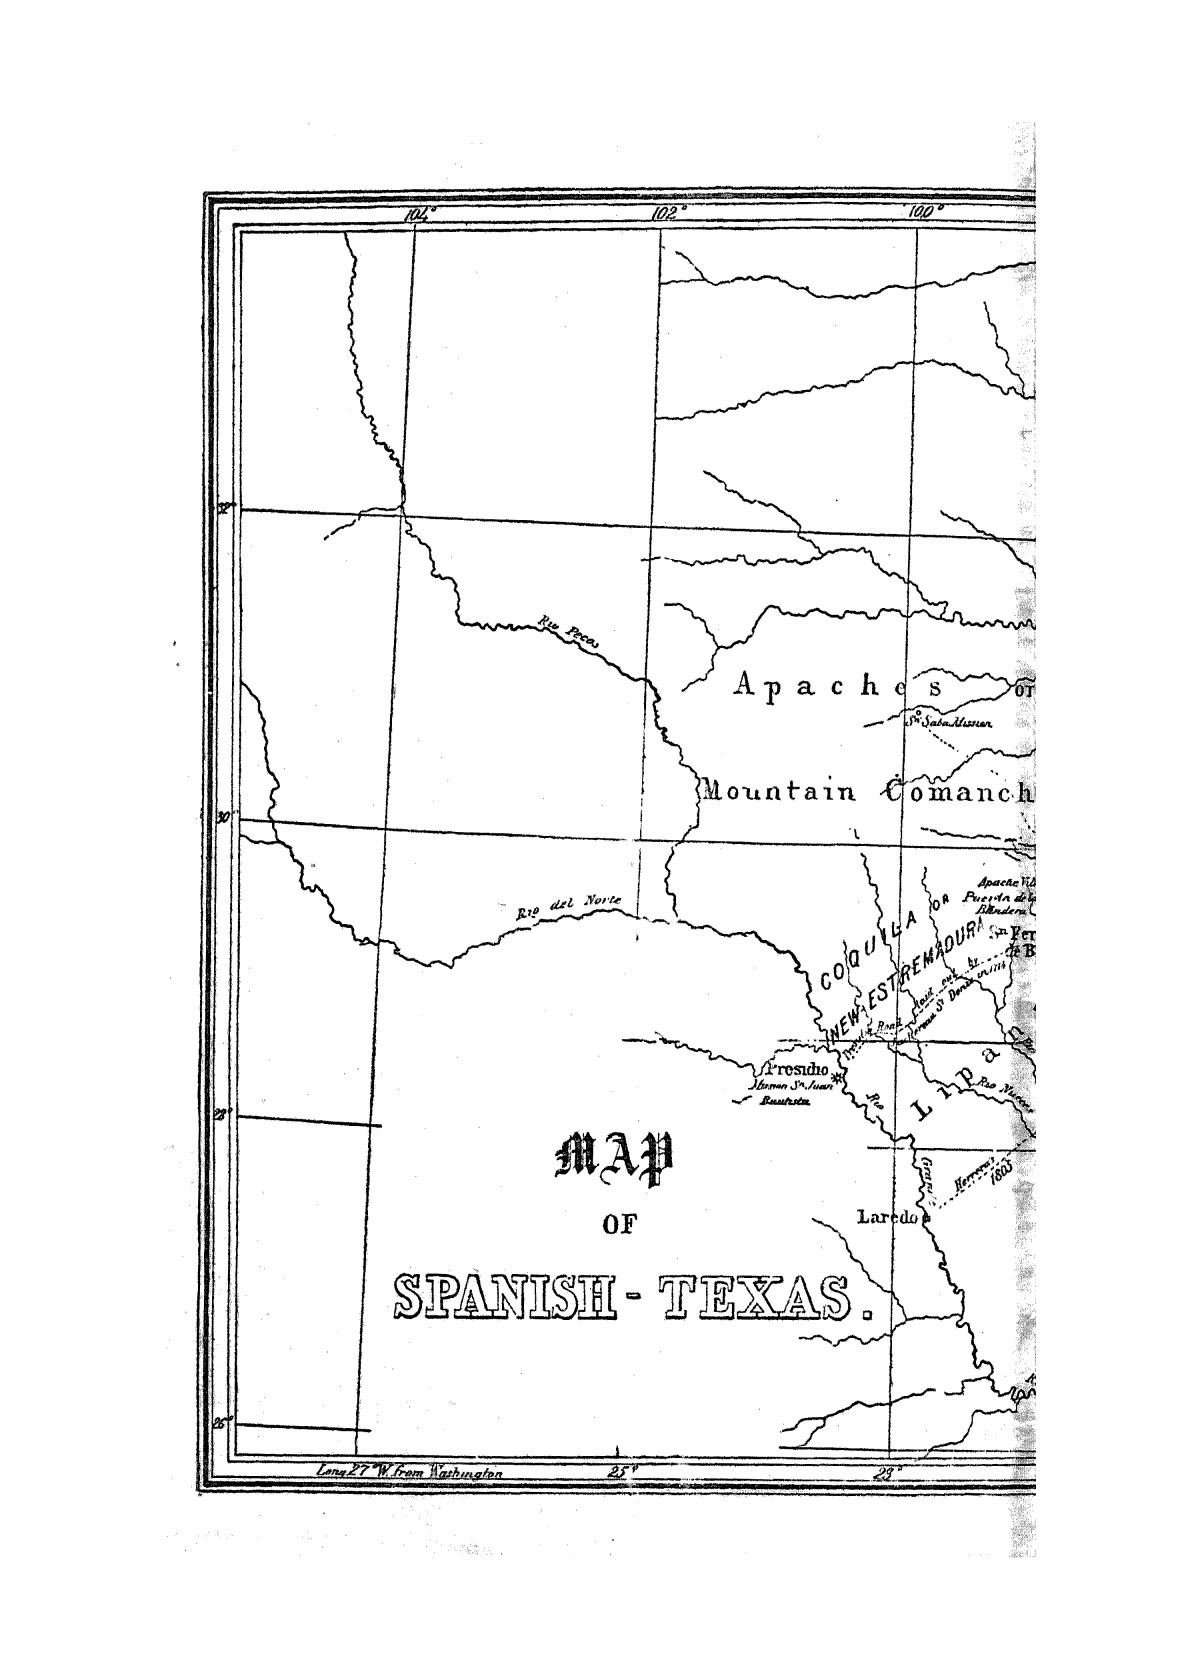 A new history of Texas for schools : also for general reading and for teachers preparing themselves for examination                                                                                                      [Sequence #]: 37 of 412